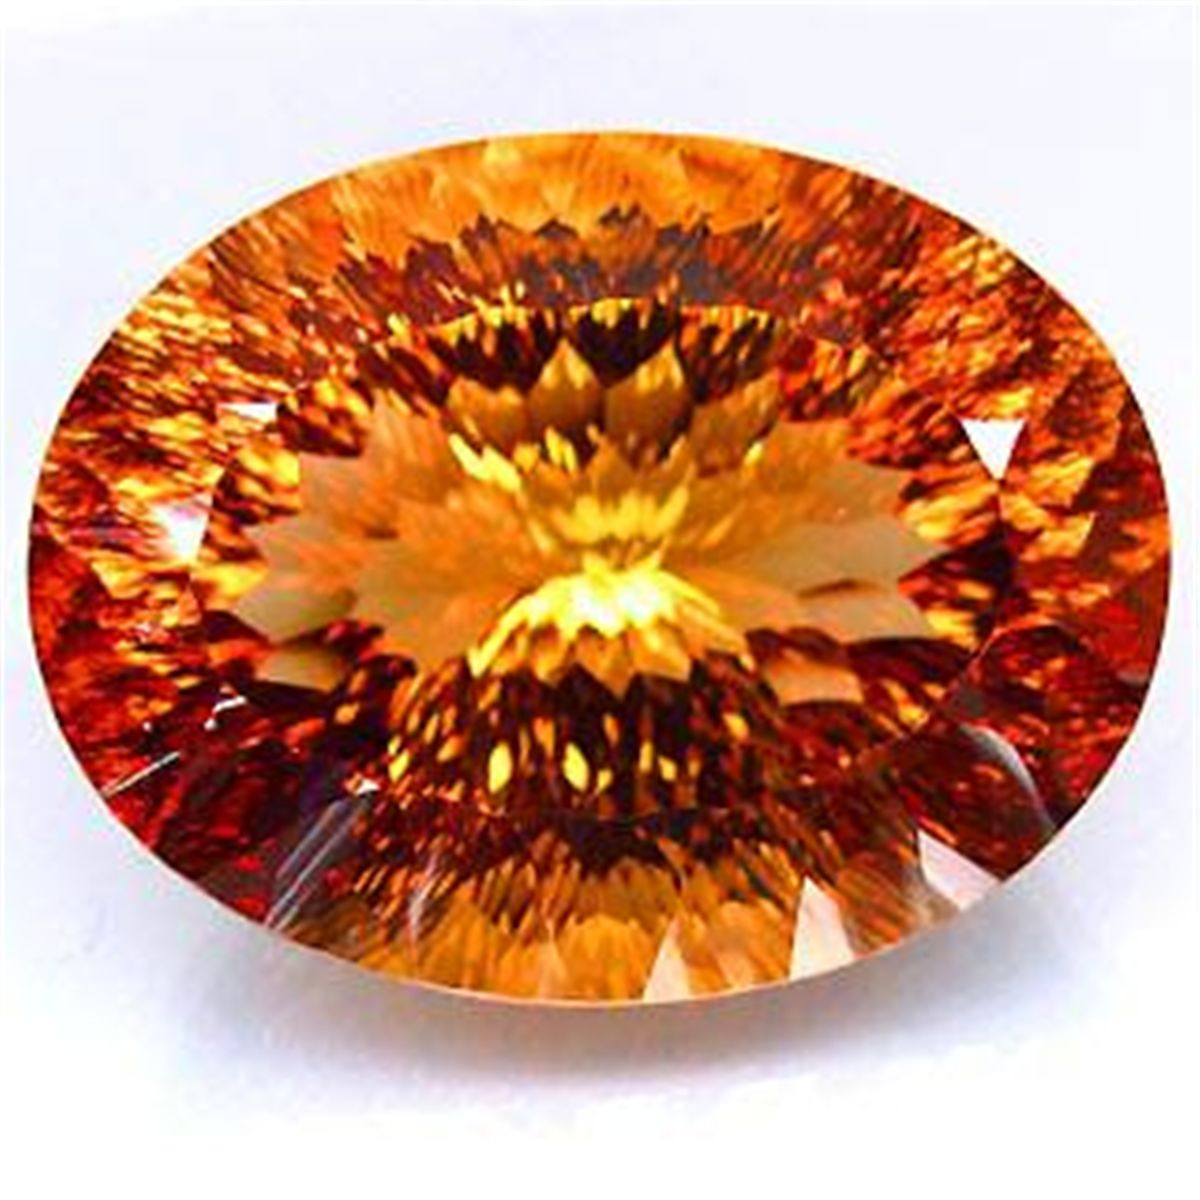 sapphire an amazing gem associated with the heavens Sapphire is an aluminum oxide gemstone or heaven scholars now debate the deep blue color usually associated with sapphire corresponds to the throat chakra.